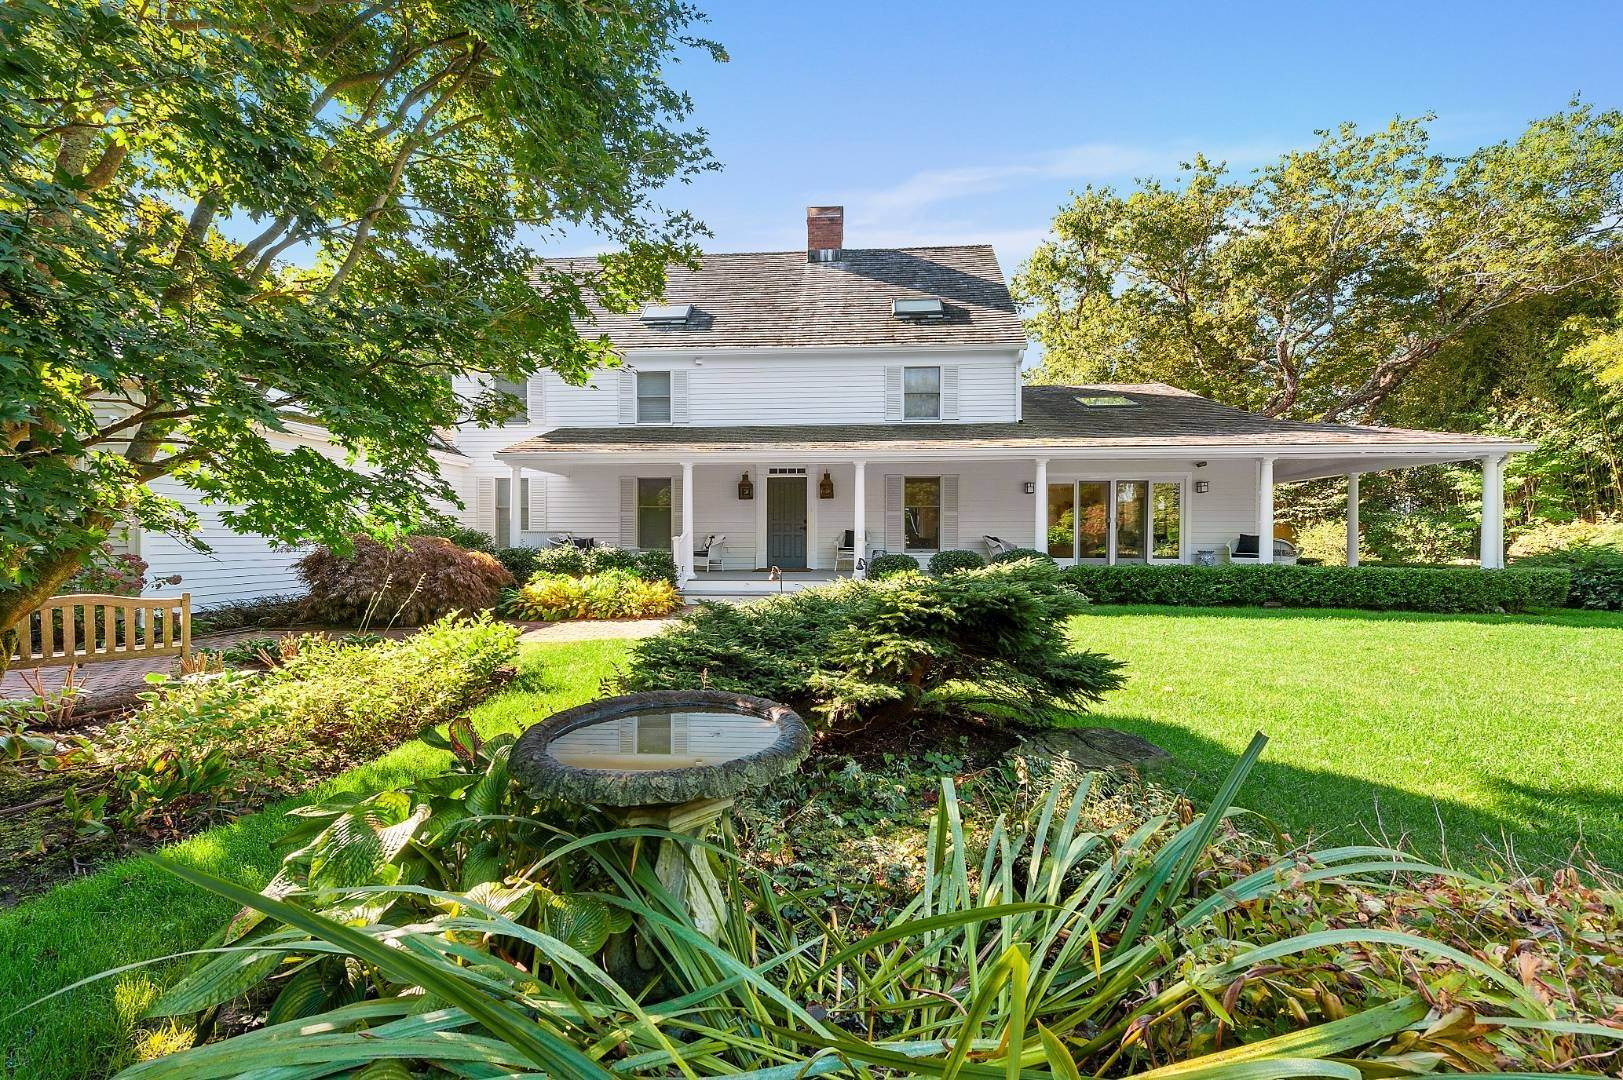 Single Family Home for Sale at On The Edge Of The Village 1 Sally Ct, East Hampton, NY 11937